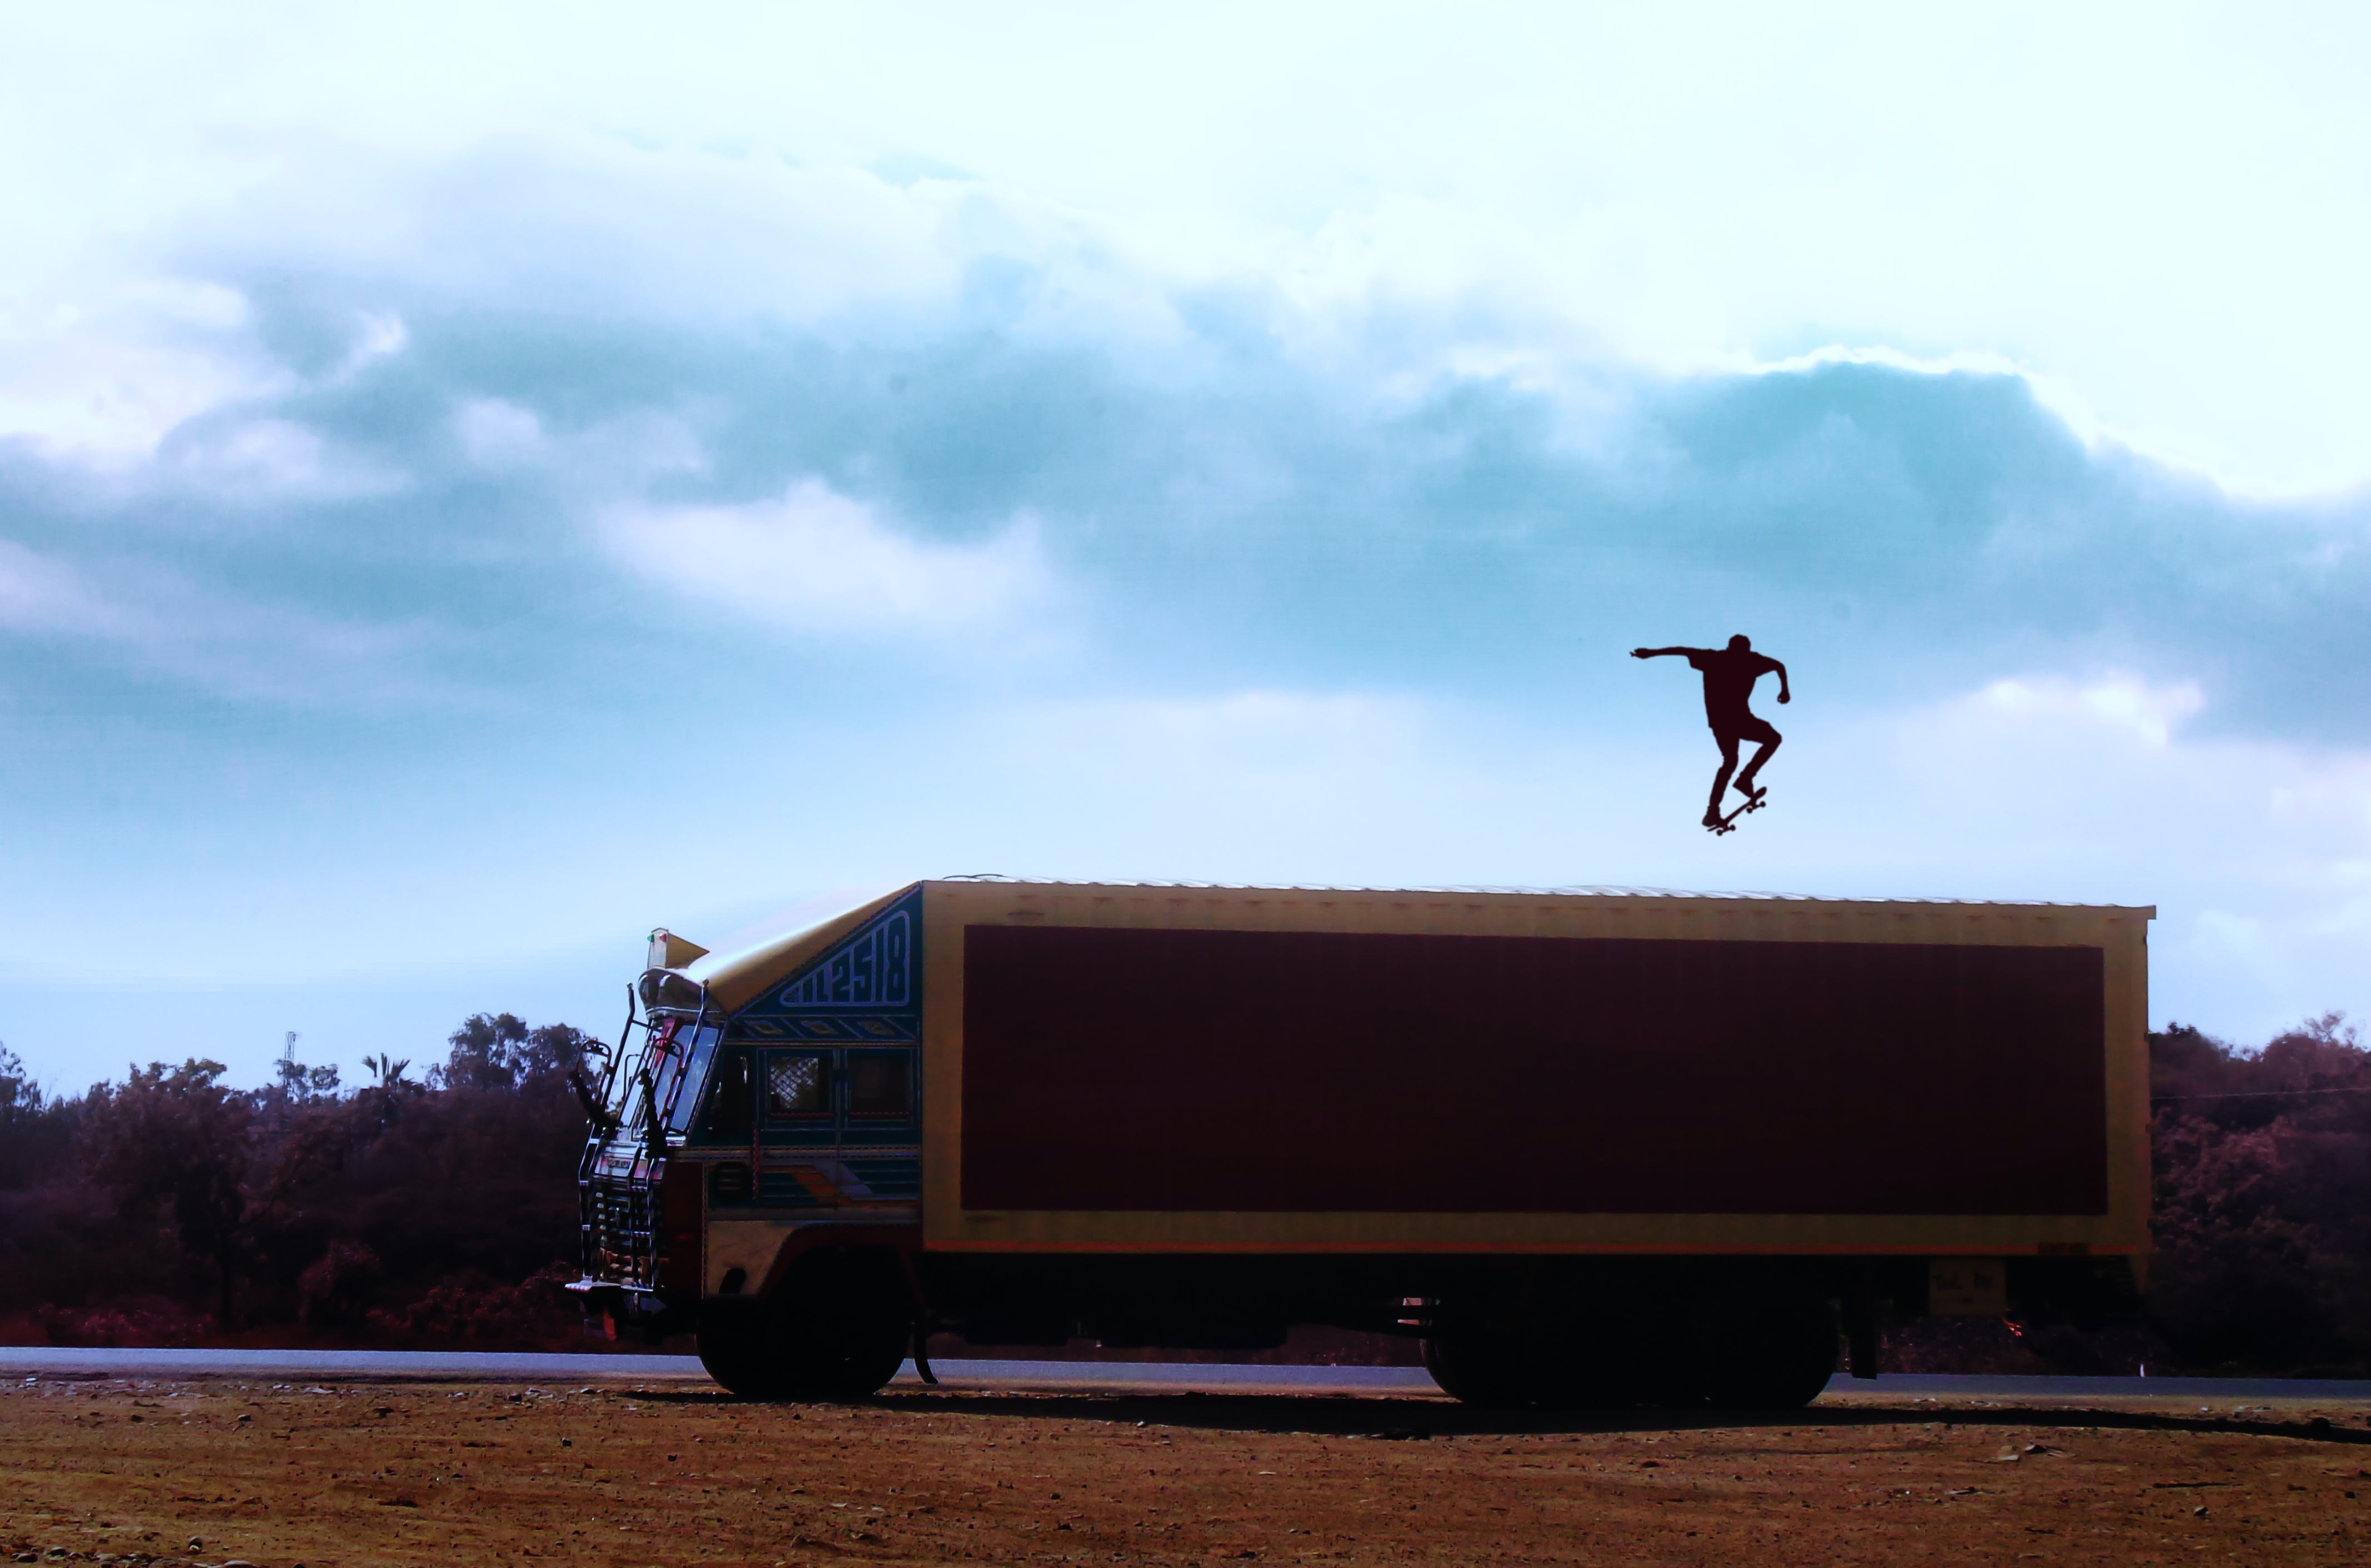 Brown Truck With Man With Skateboard on Top